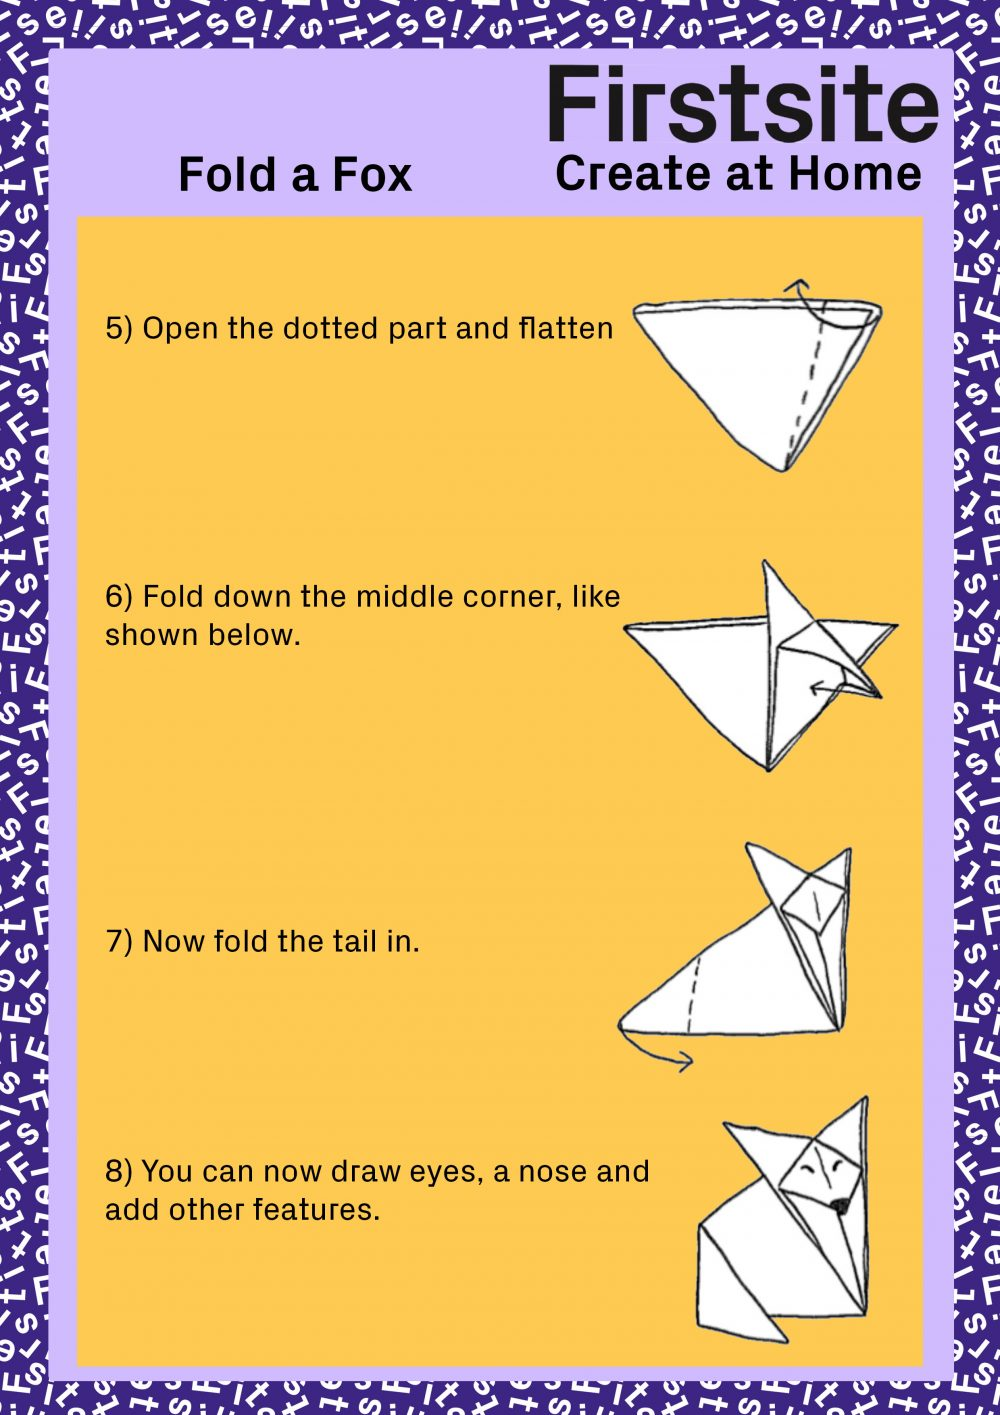 Firstsite Create at Home Fold a Friend Instructions pg 5 of 5